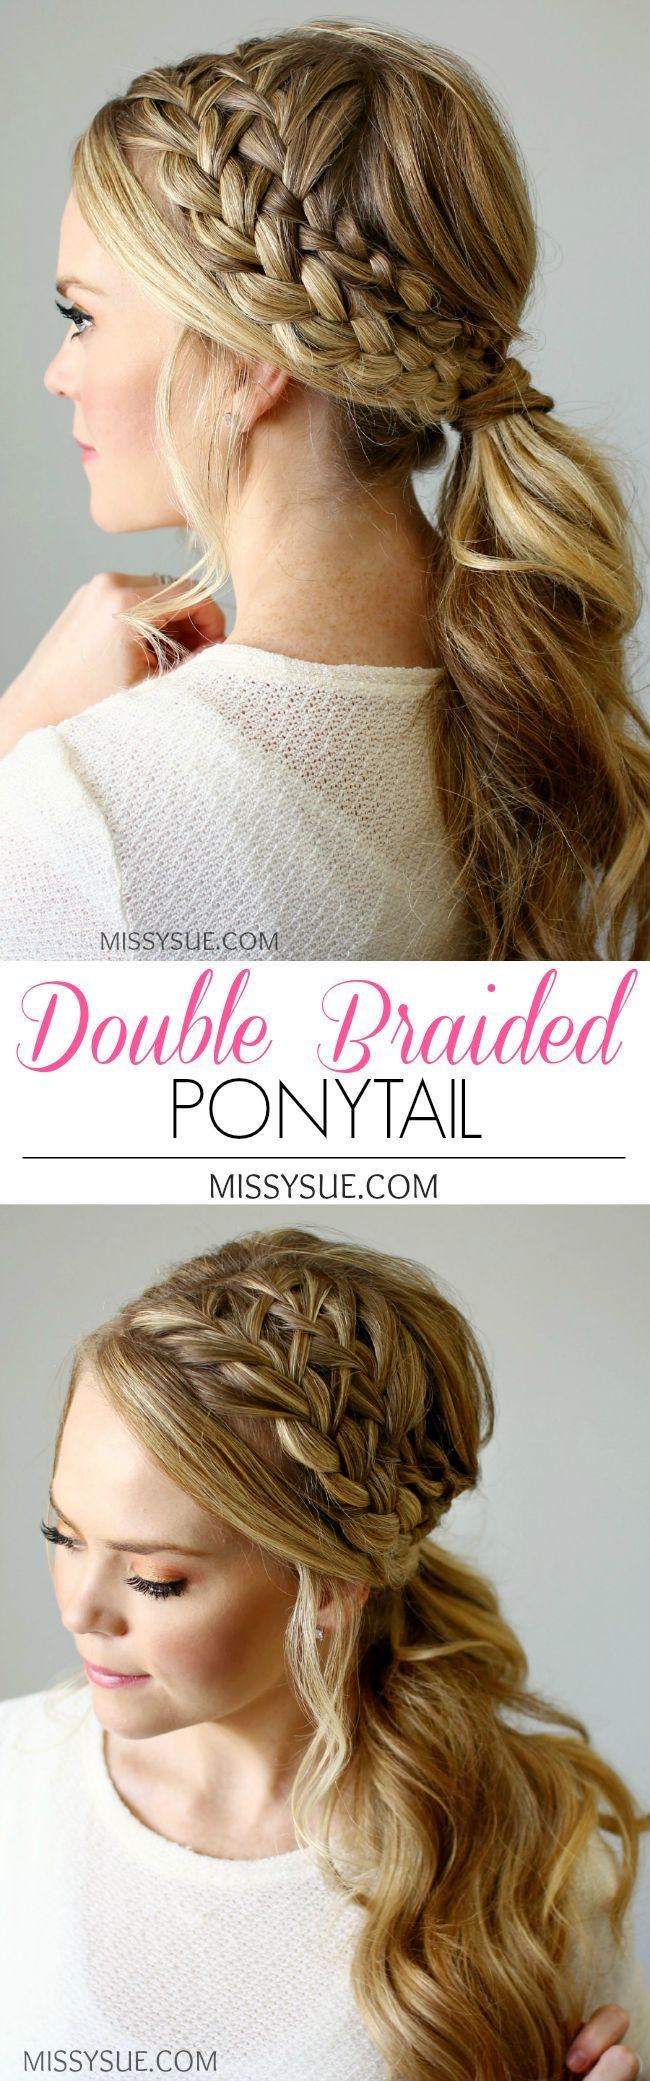 Double braided ponytail braided ponytail braid hairstyles and